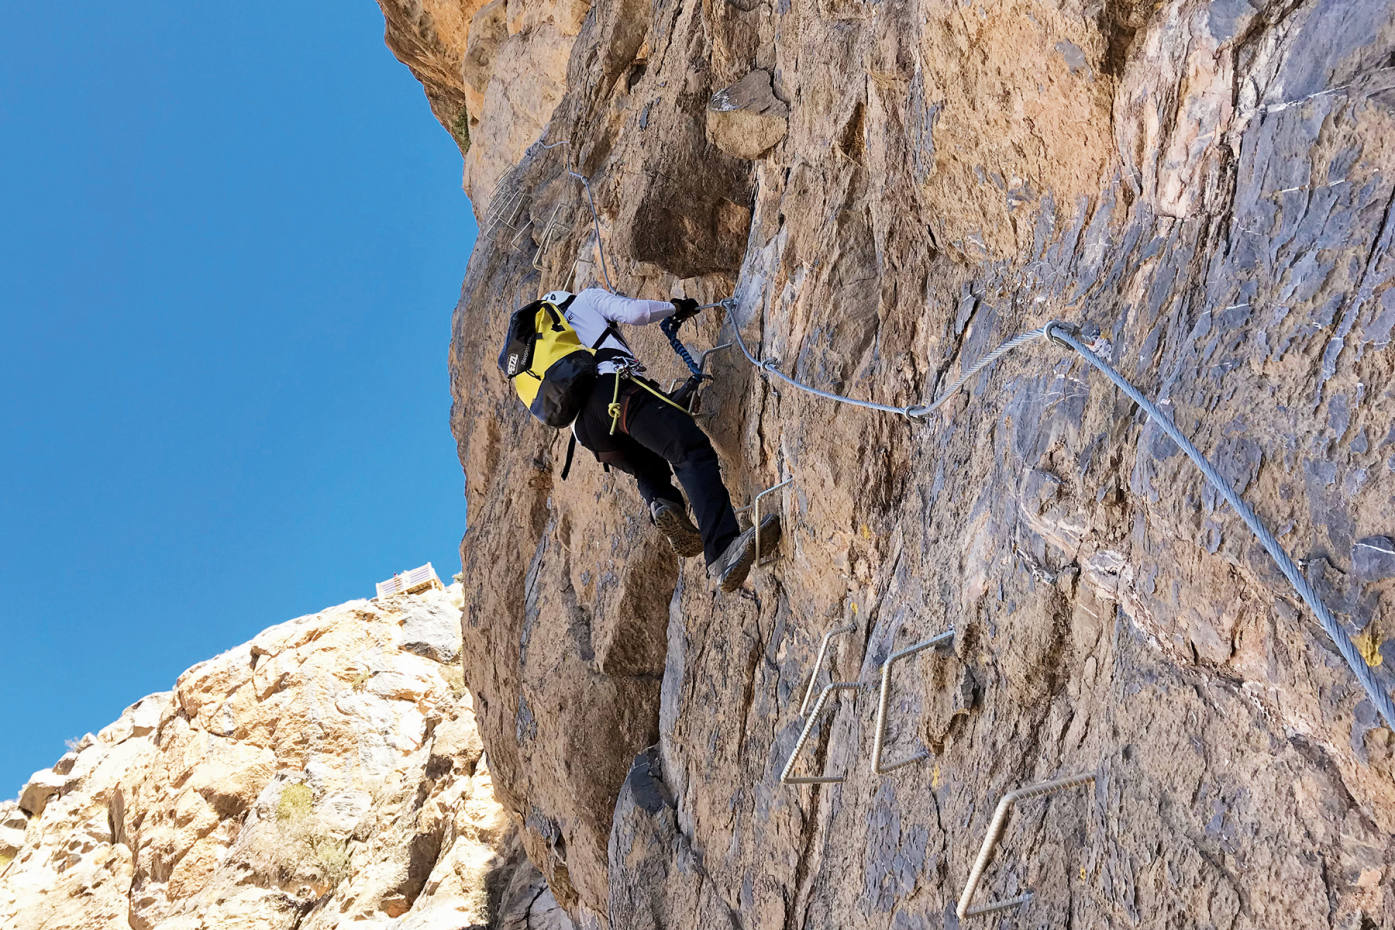 Canyon running and via ferrata in Oman | How To Spend It